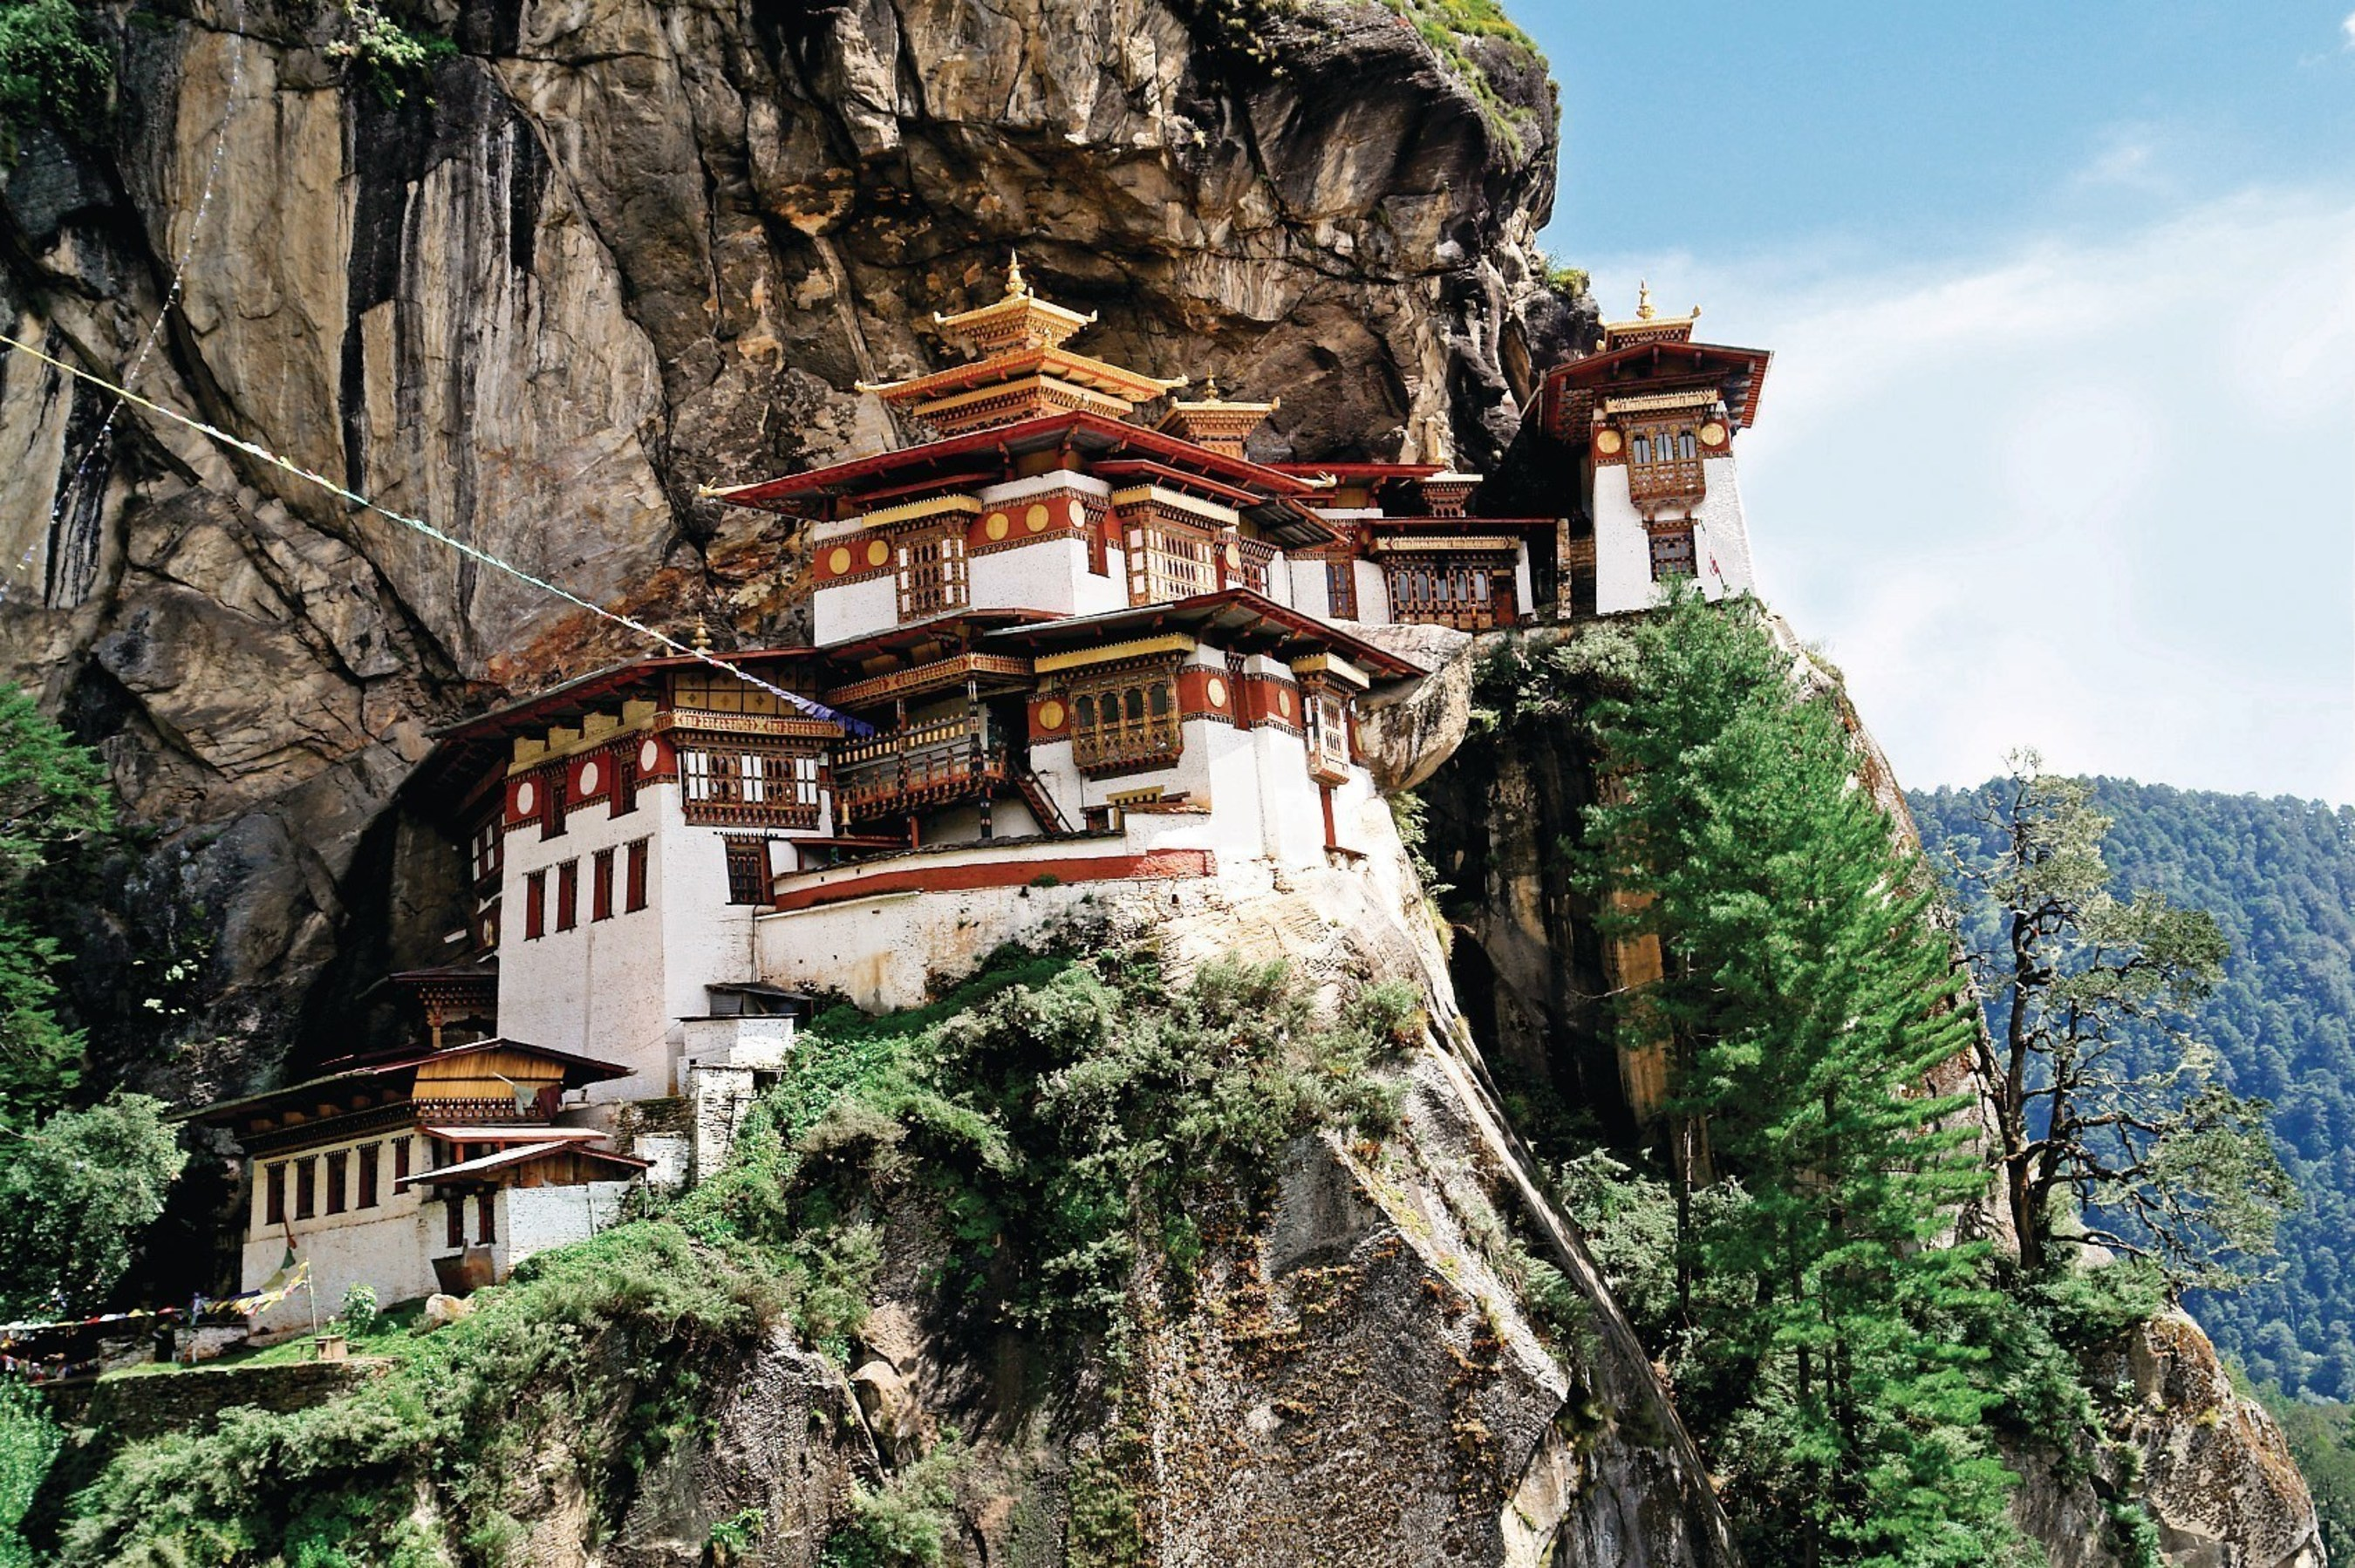 """Travelers visit the """"Tiger's Nest"""" Monastery in Parom, Bhutan as part of Overseas Adventure Travel's """"India's Sikkim & Bhutan: Hidden Kingdoms of the Himalayas""""--one of five new small group adventures to Asia in 2017."""